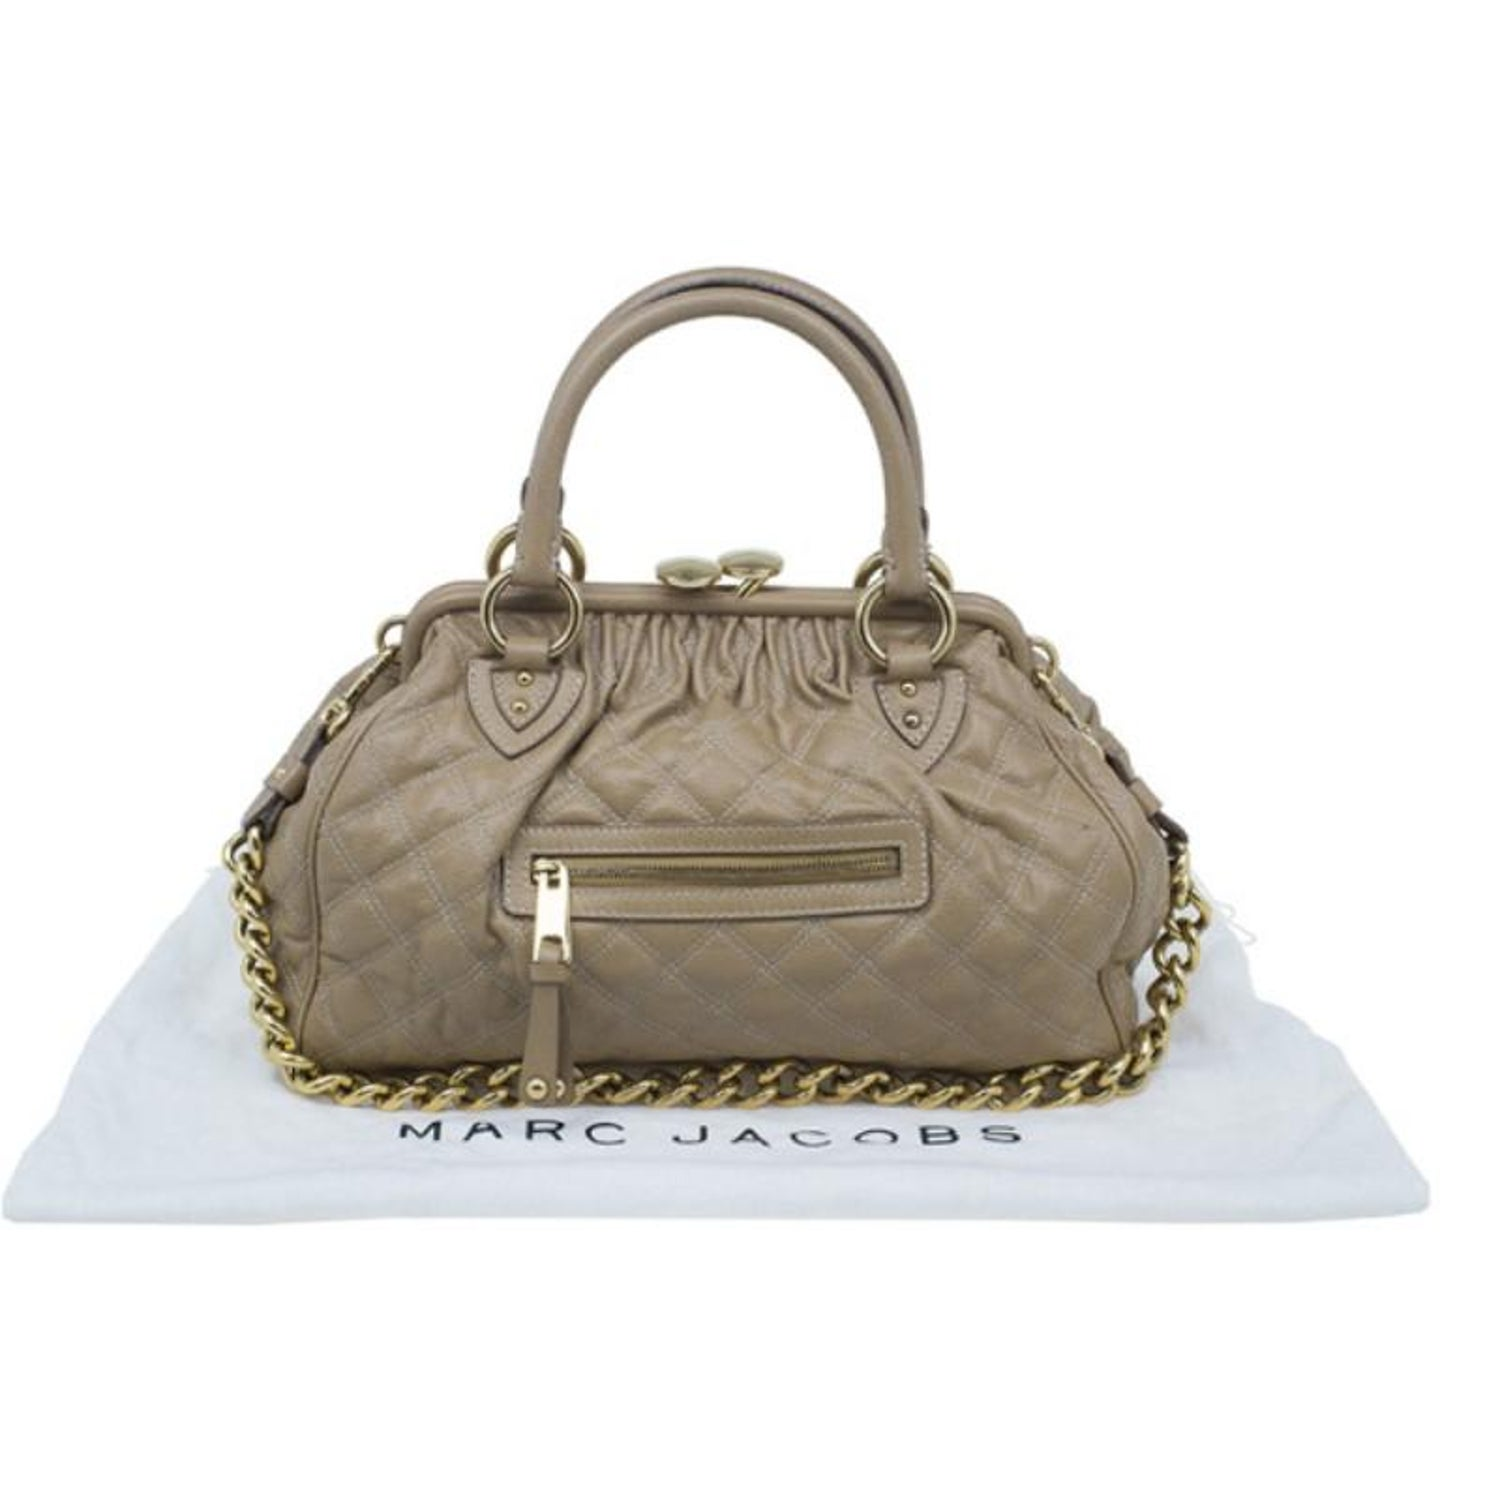 3a14554dafd1 Marc Jacobs Beige Quilted Leather Stam Bag For Sale at 1stdibs